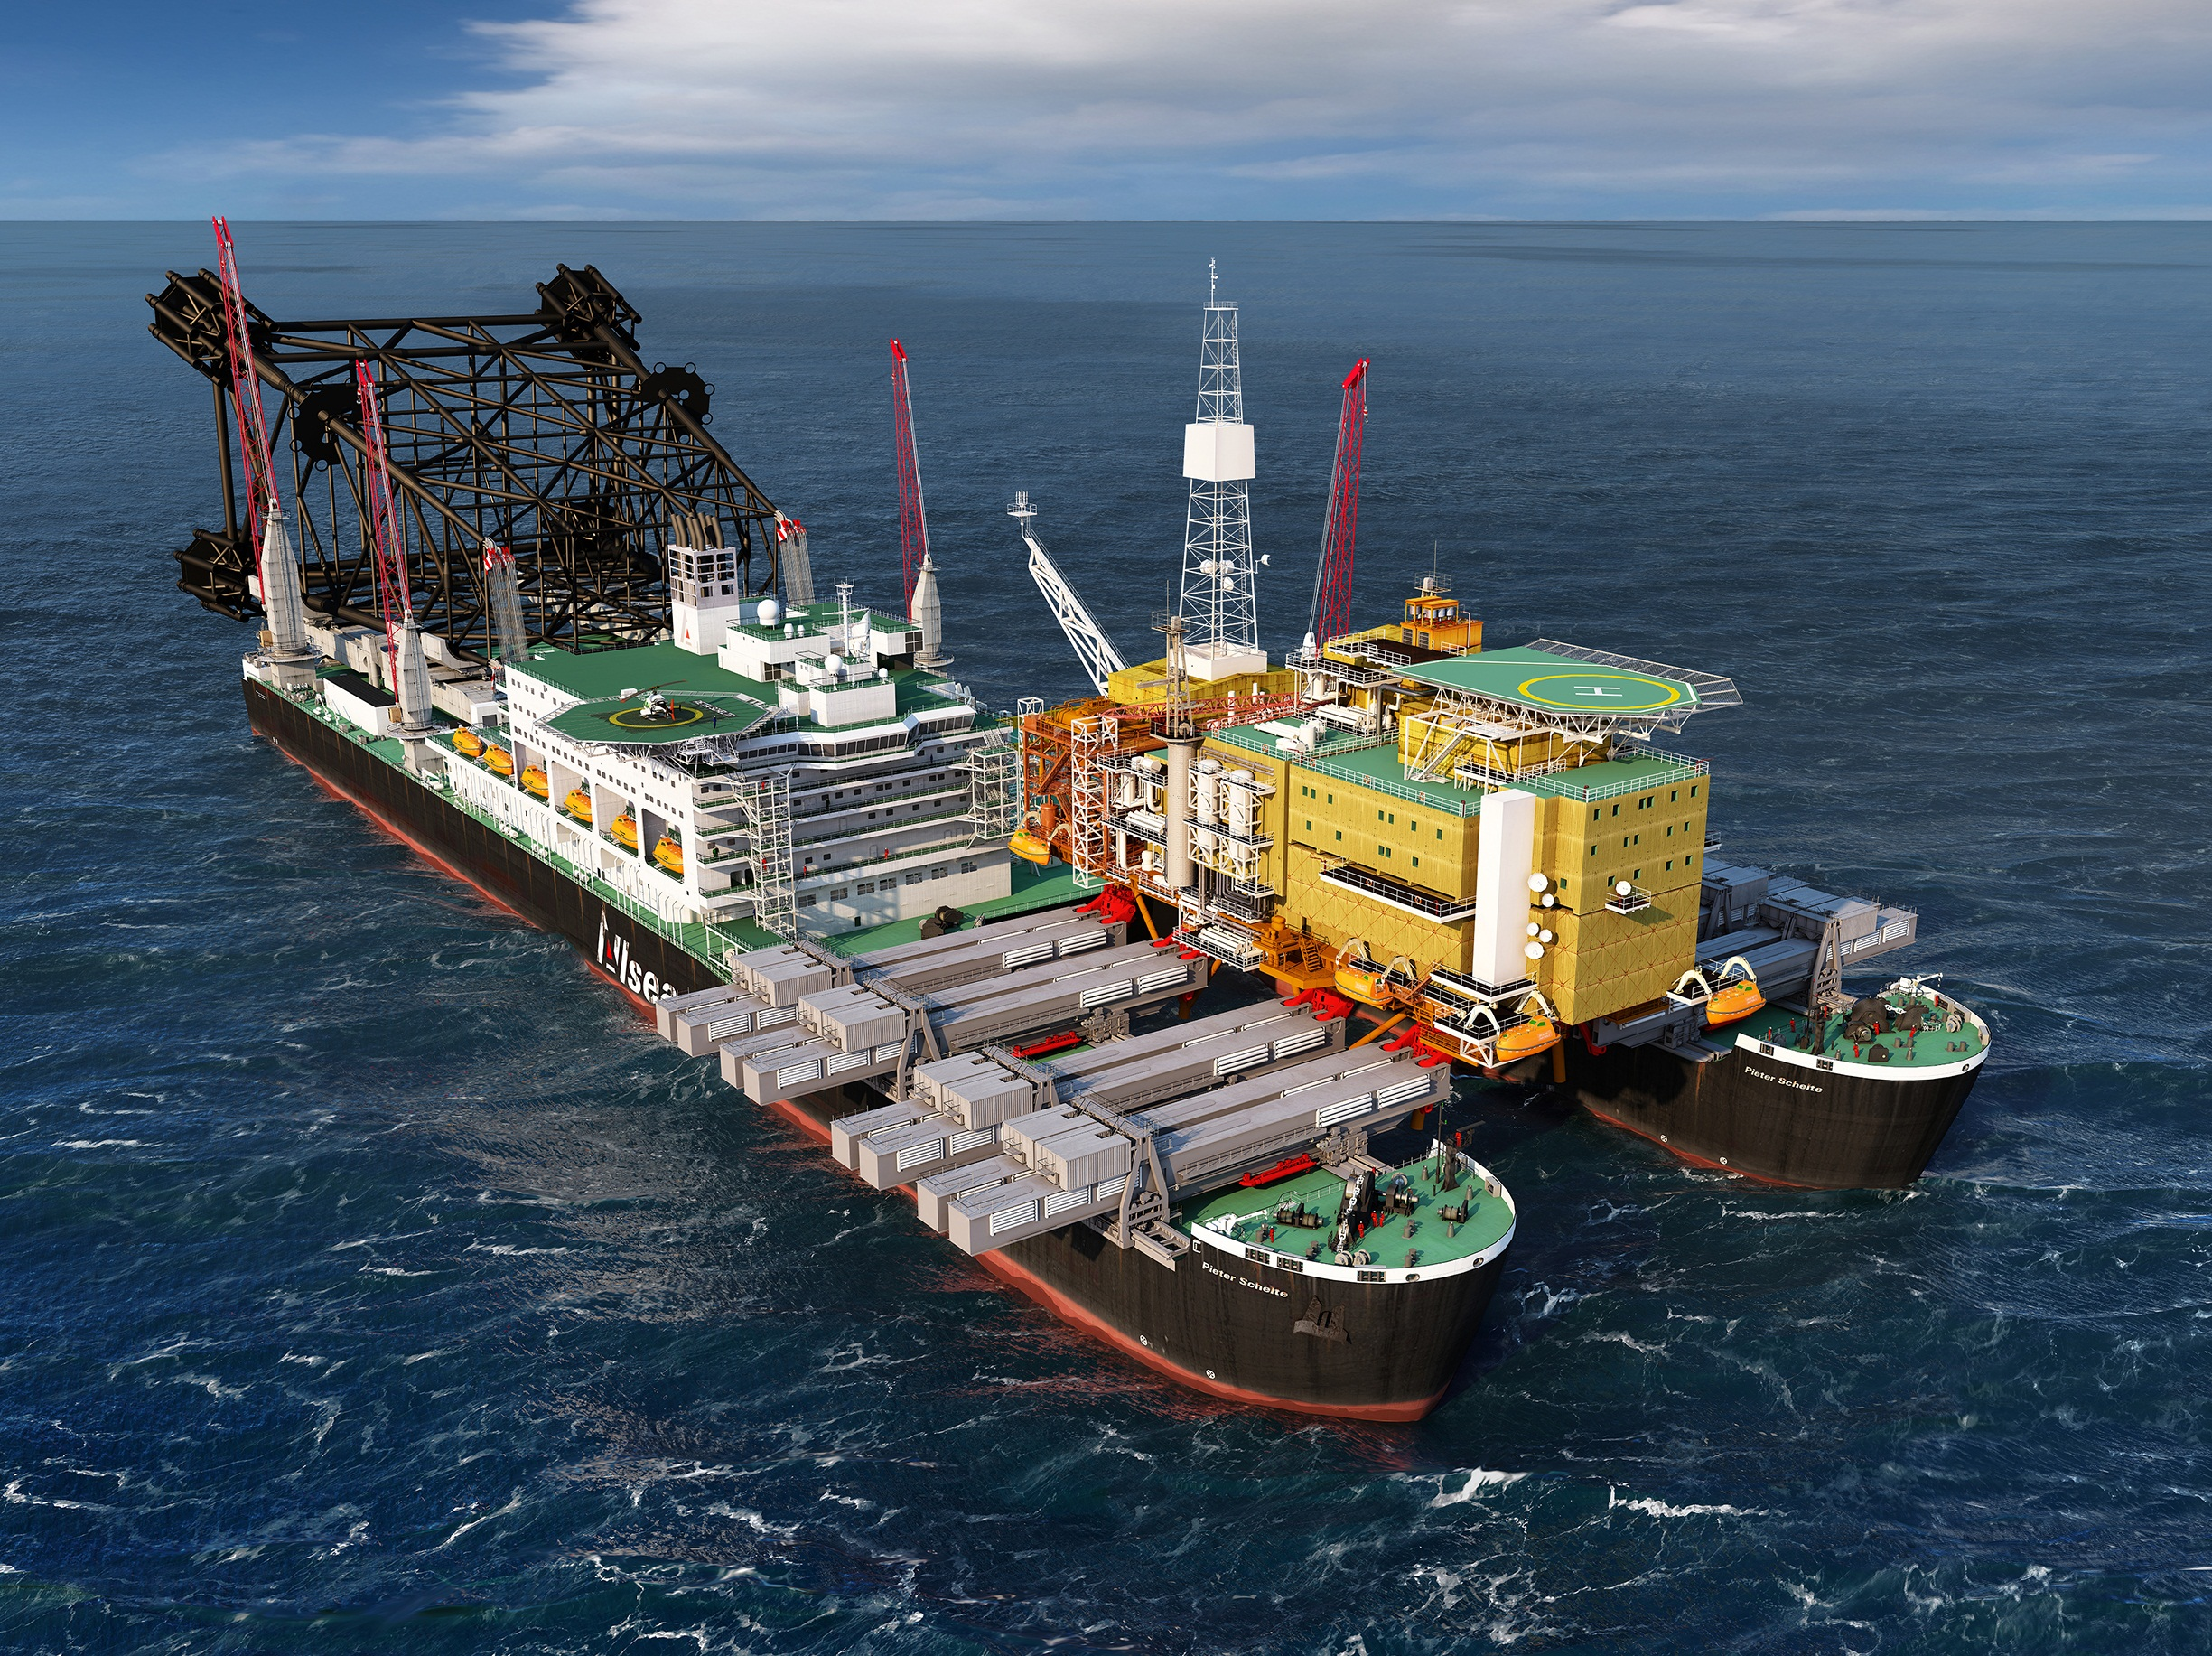 Pioneering Spirit - D.P. Platform Installation/Removal and Pipelay Vessel